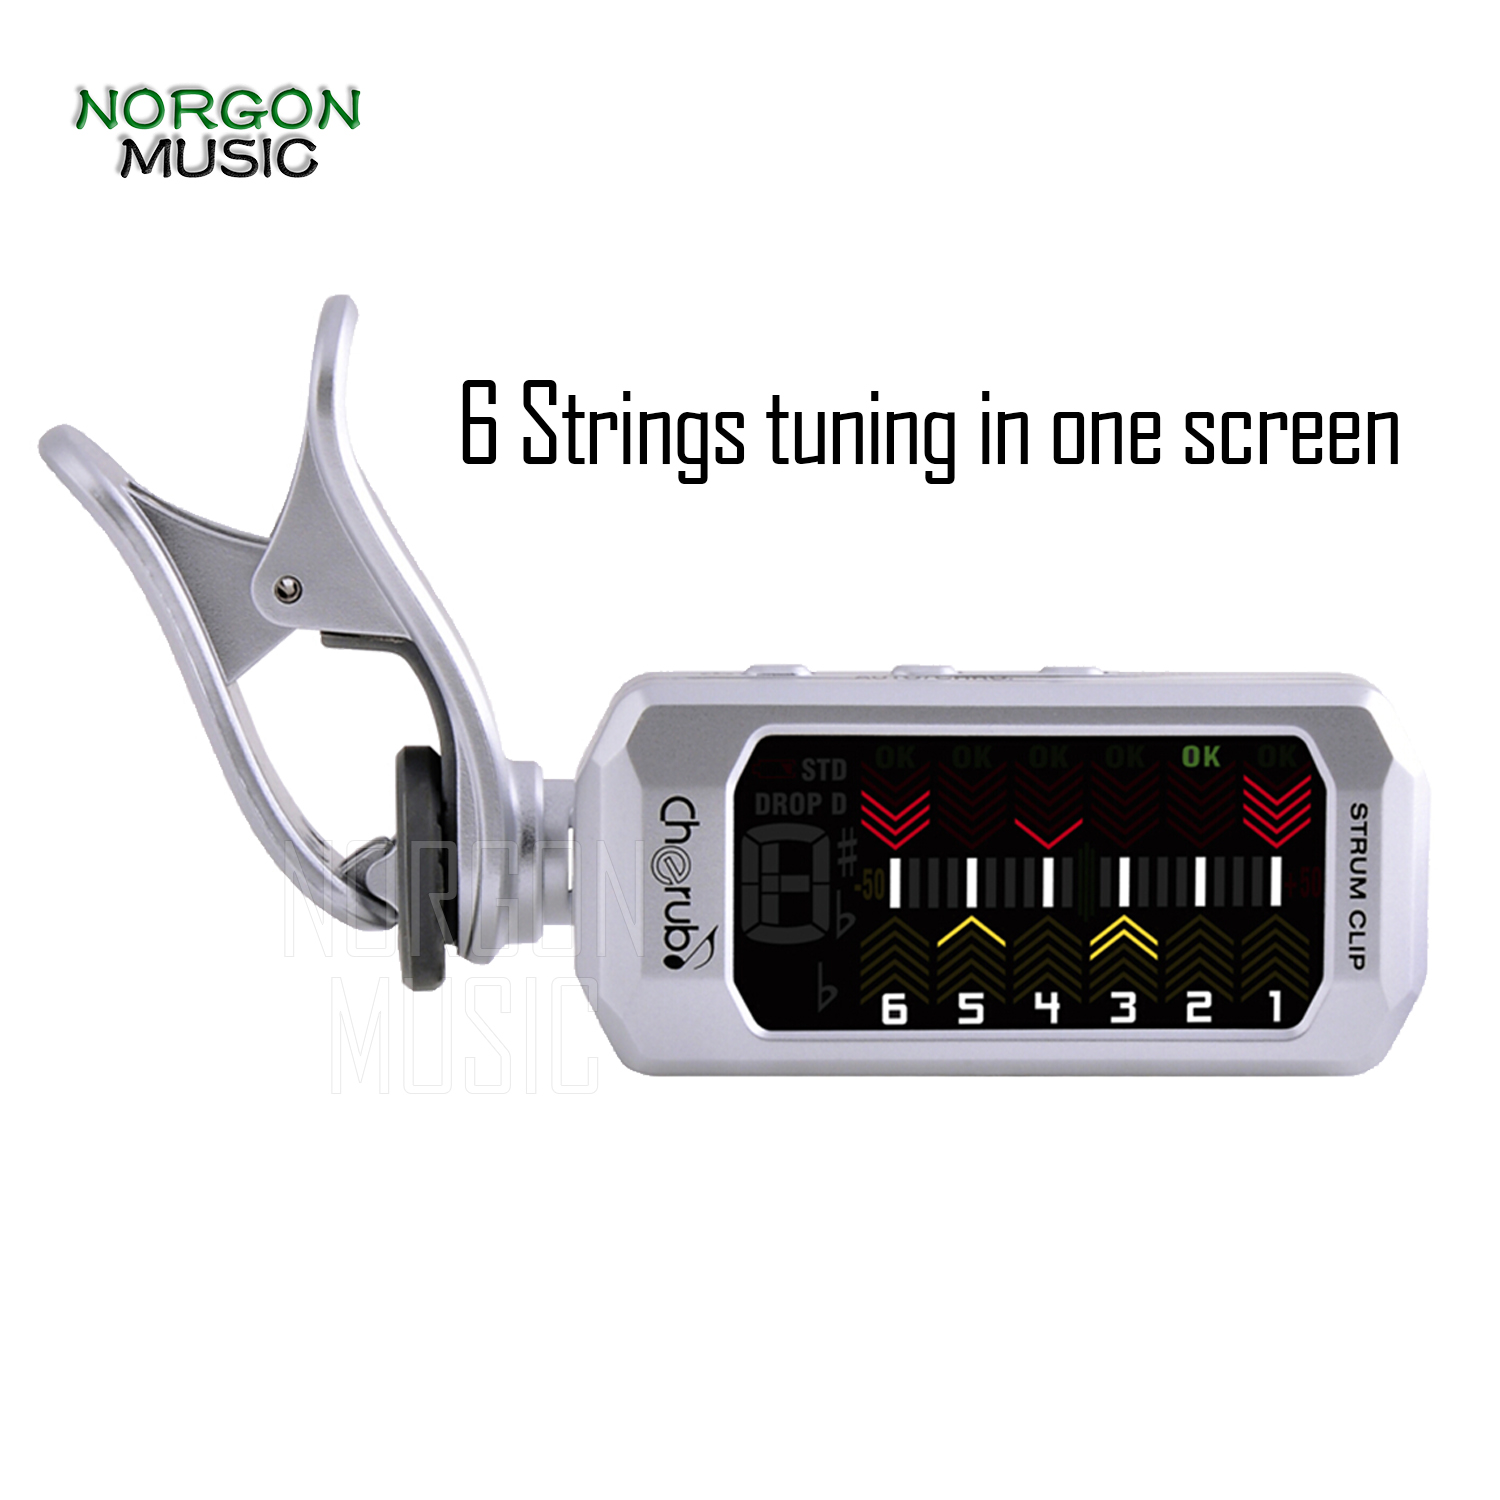 Cherub Clip-on Guitar Tuner USB Rechargeable Lithium Battery Tunning 6 Strings Simultaneously Guitar Parts AccessoriesCherub Clip-on Guitar Tuner USB Rechargeable Lithium Battery Tunning 6 Strings Simultaneously Guitar Parts Accessories